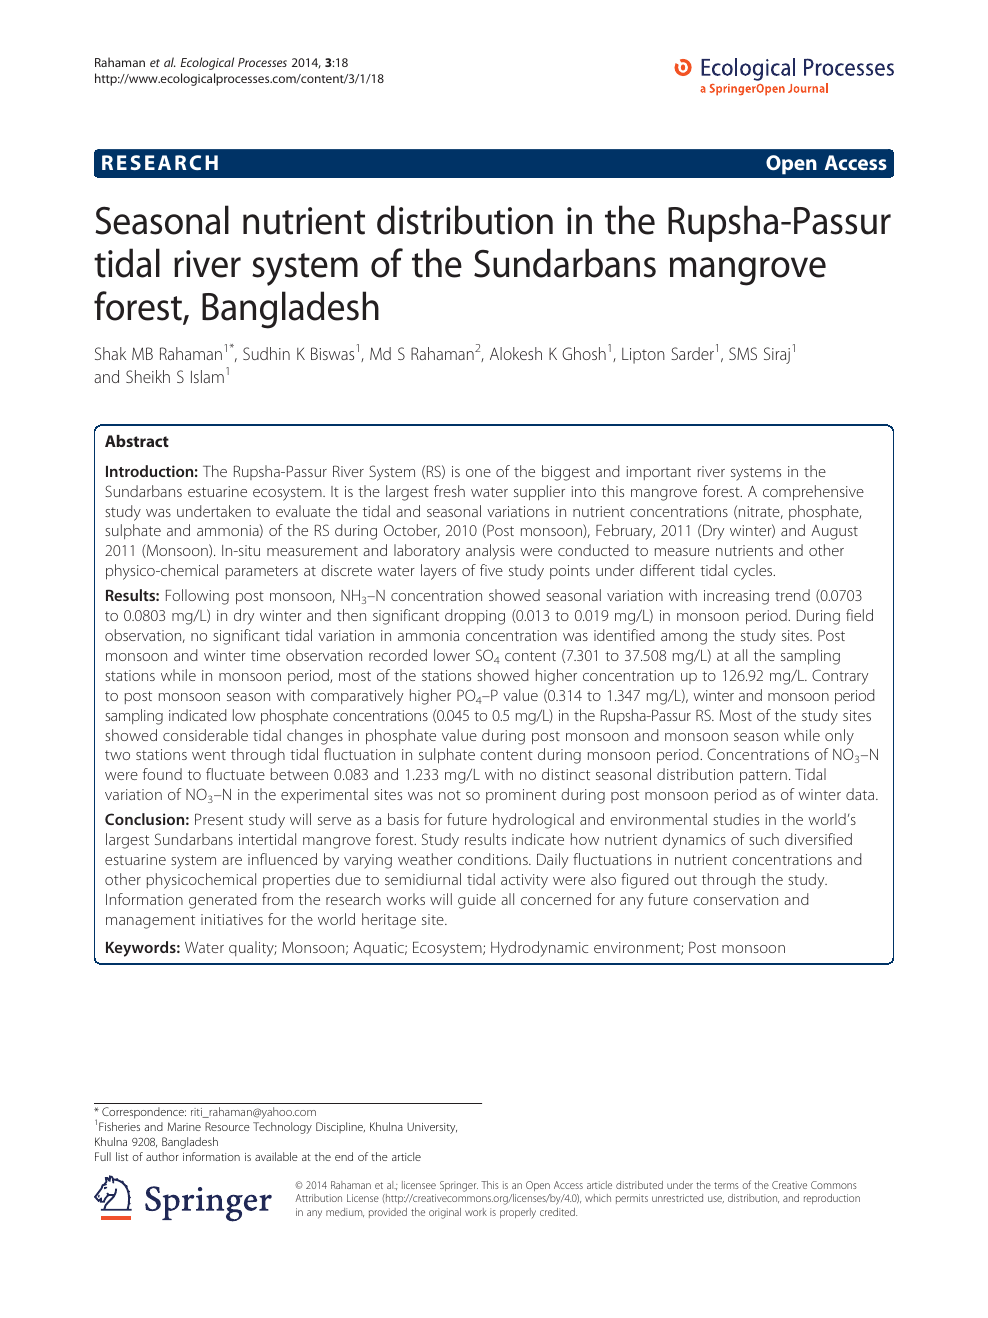 Seasonal nutrient distribution in the Rupsha-Passur tidal